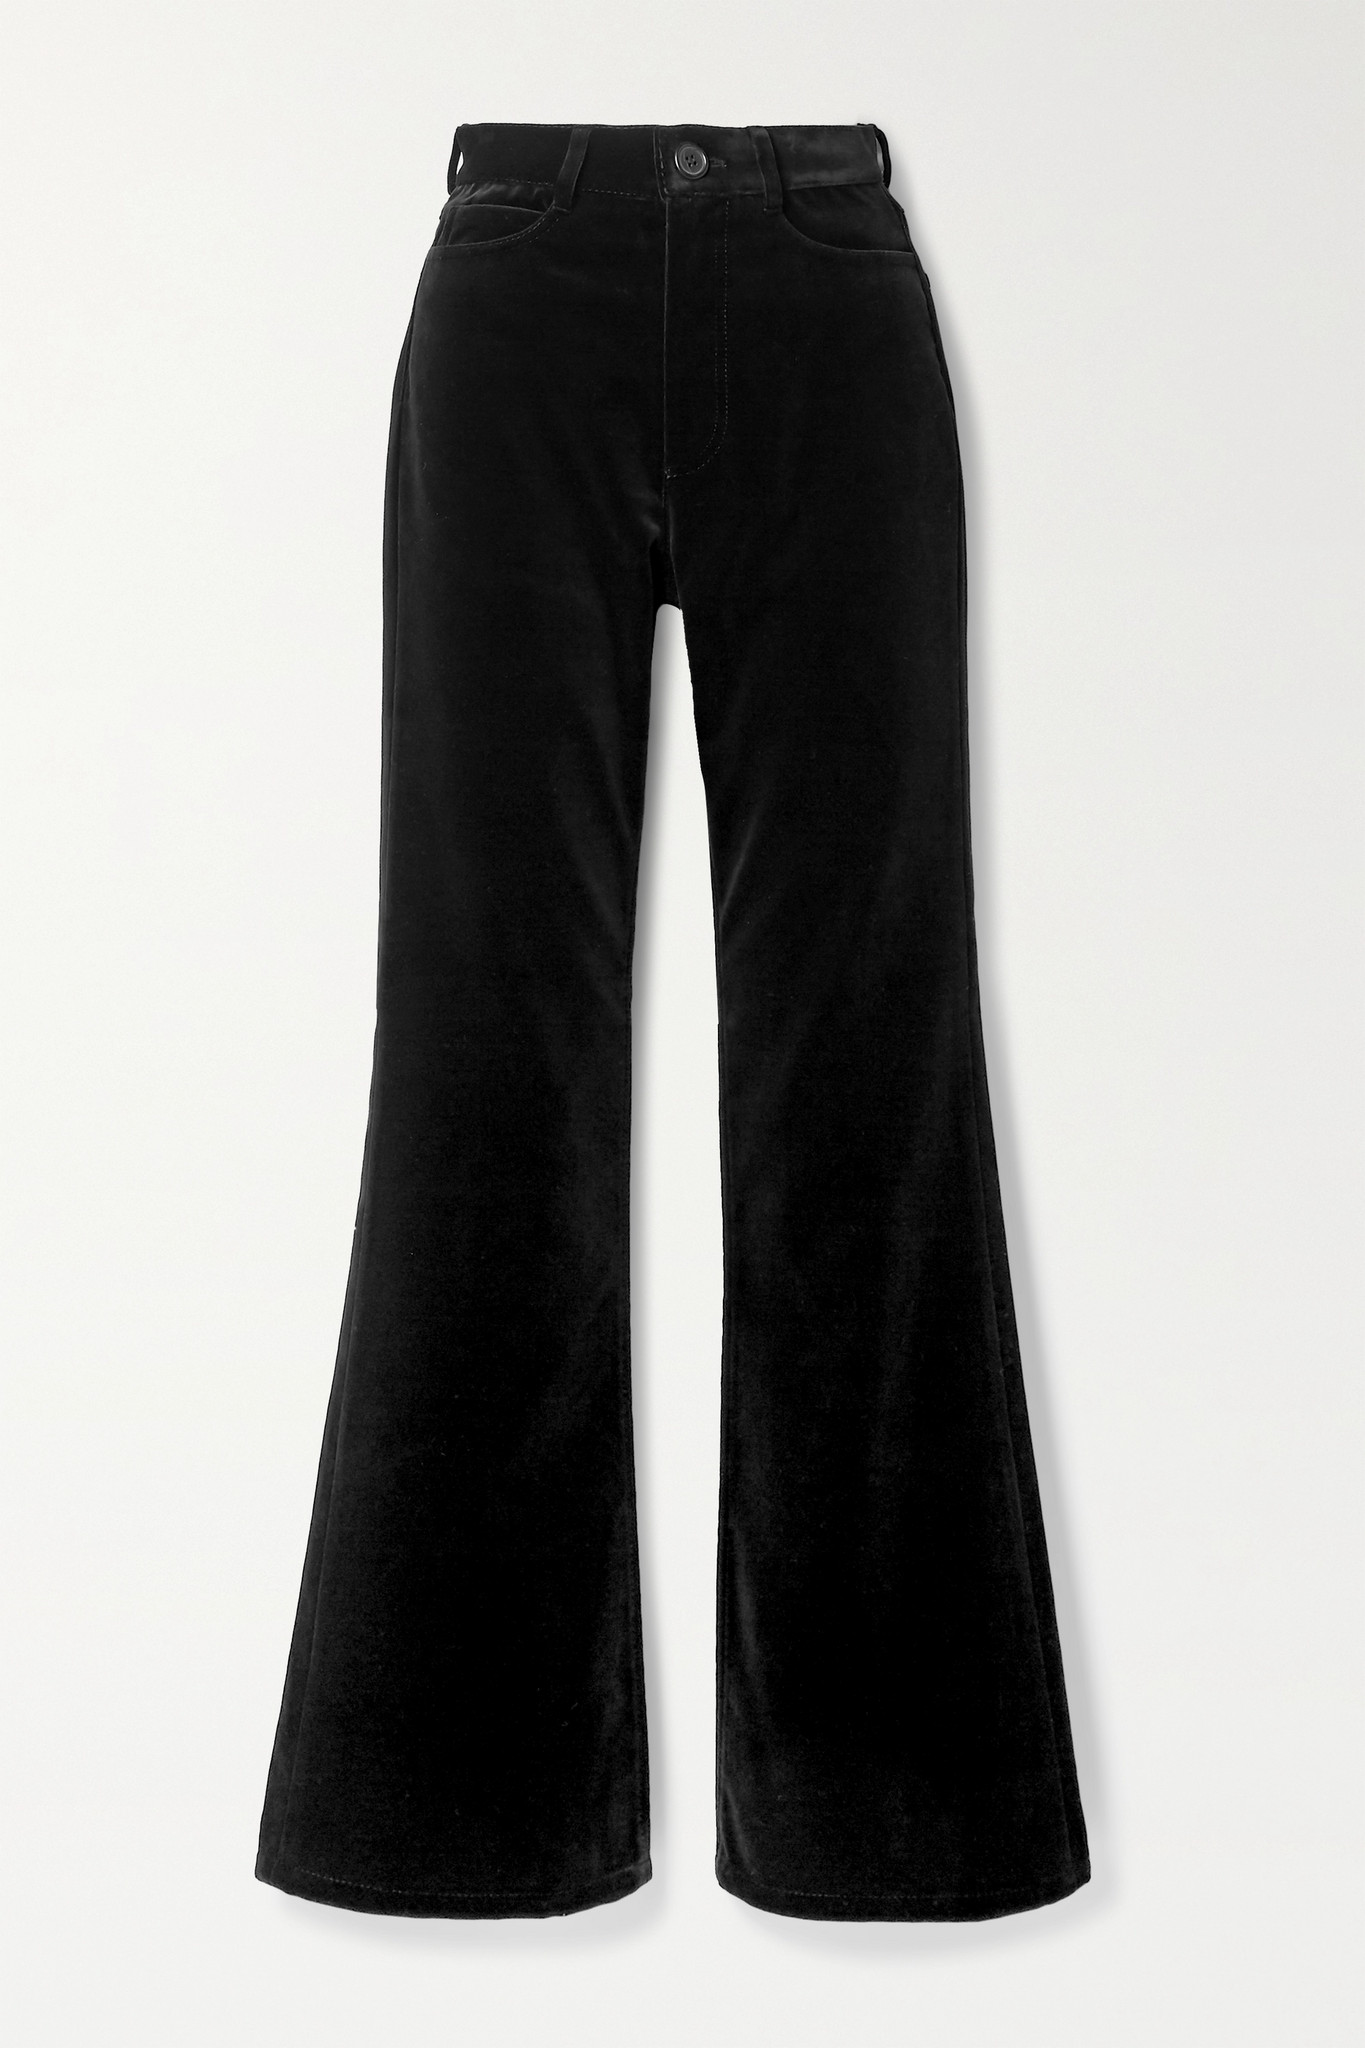 MERYLL ROGGE - Cotton-velvet Flared Pants - Black - 27